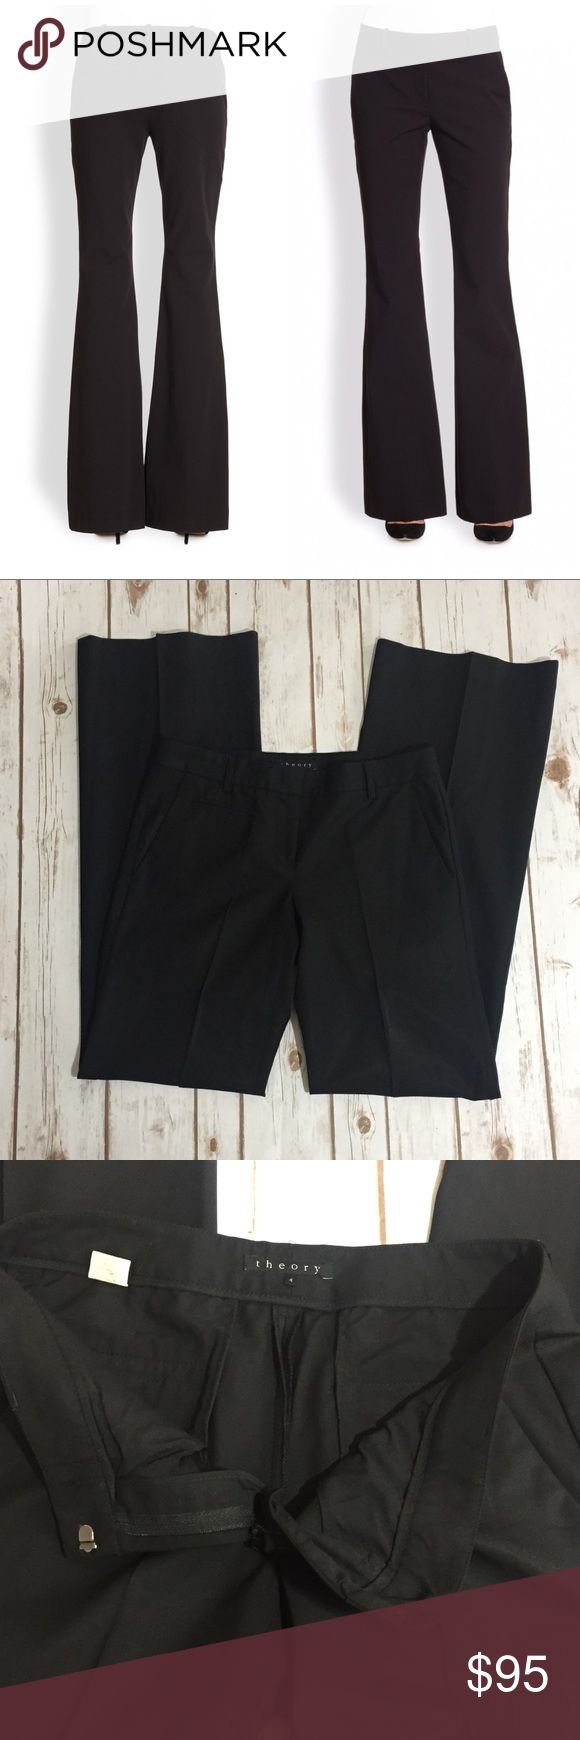 """Theory Flare Shine Slacks Pants Theory black Flare Trousers with a subtle shine to them. Size 4. Made of 96% wool and 4% Lycra. Approximate measurements flat and unstretched: waist 30"""", rise 8"""", and inseam 34"""". Worn once and in like new condition. ⚓️No trades or holds. I accept reasonable offers and only negotiate through the offer button. 🚭🐩HB Theory Pants Trousers"""